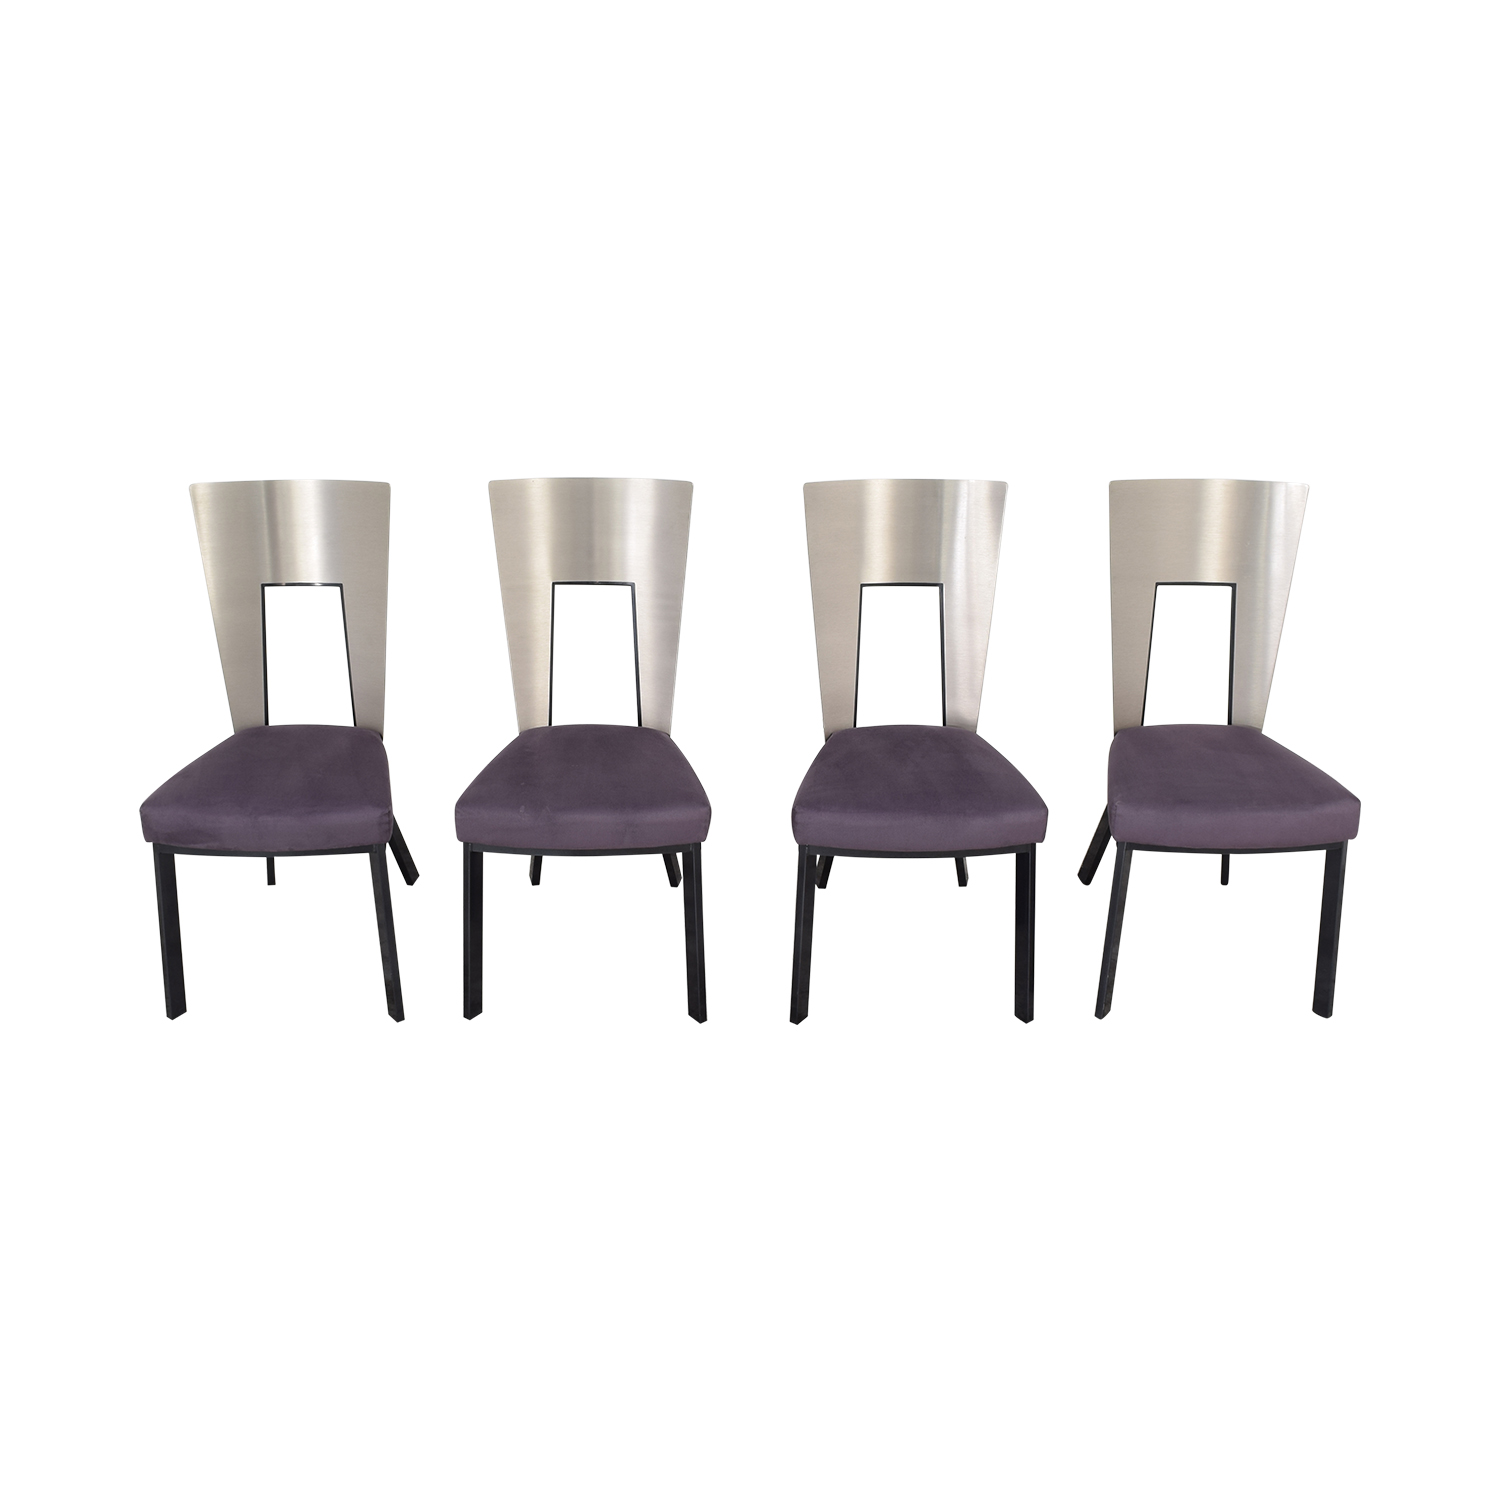 Elite Modern Regal Dining Chairs / Chairs